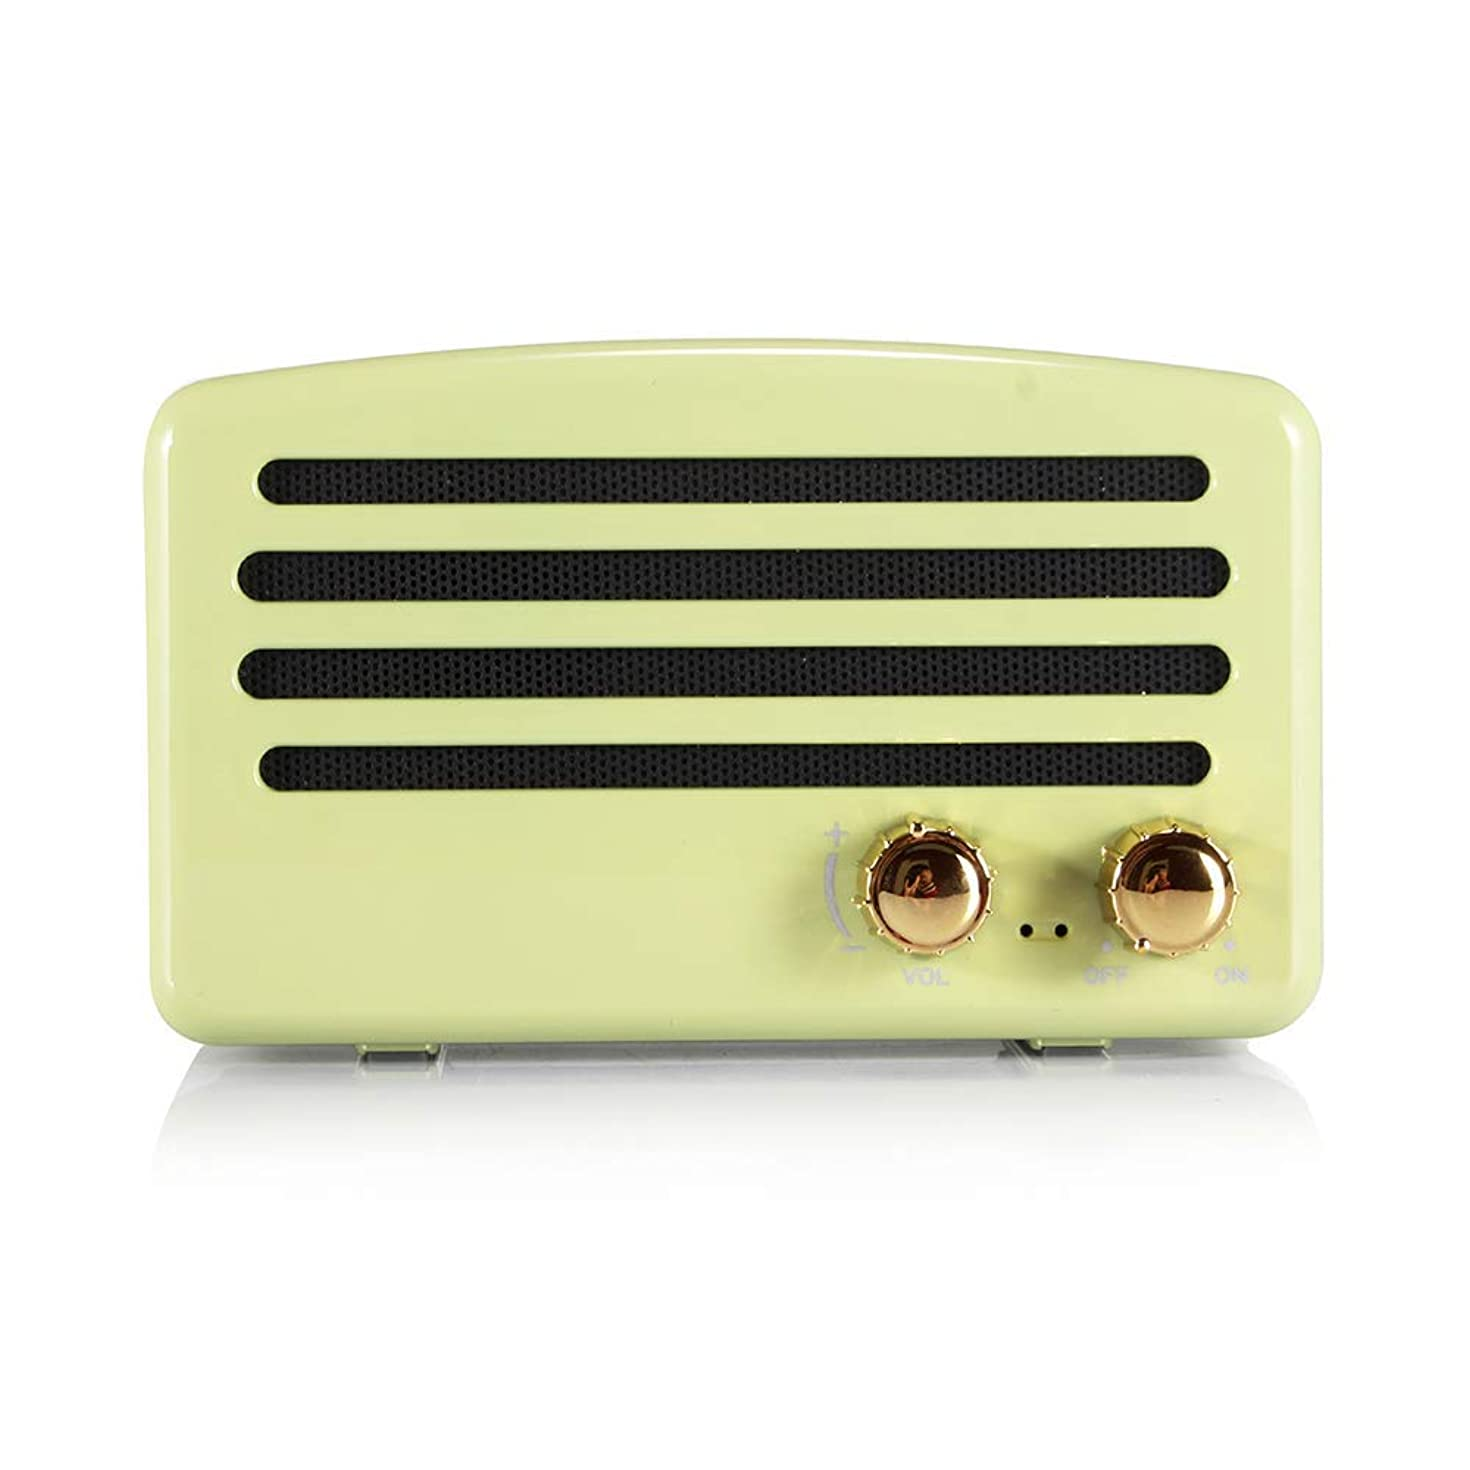 Wireless Bluetooth Retro Speaker, Portable Vintage Speaker with FM Radio, Built-in Mic for Hands-Free Phone Call, 7-8 Hrs Playtime, TF Card, USB & Aux Line-in Support for Apple/Android (Mint Green)